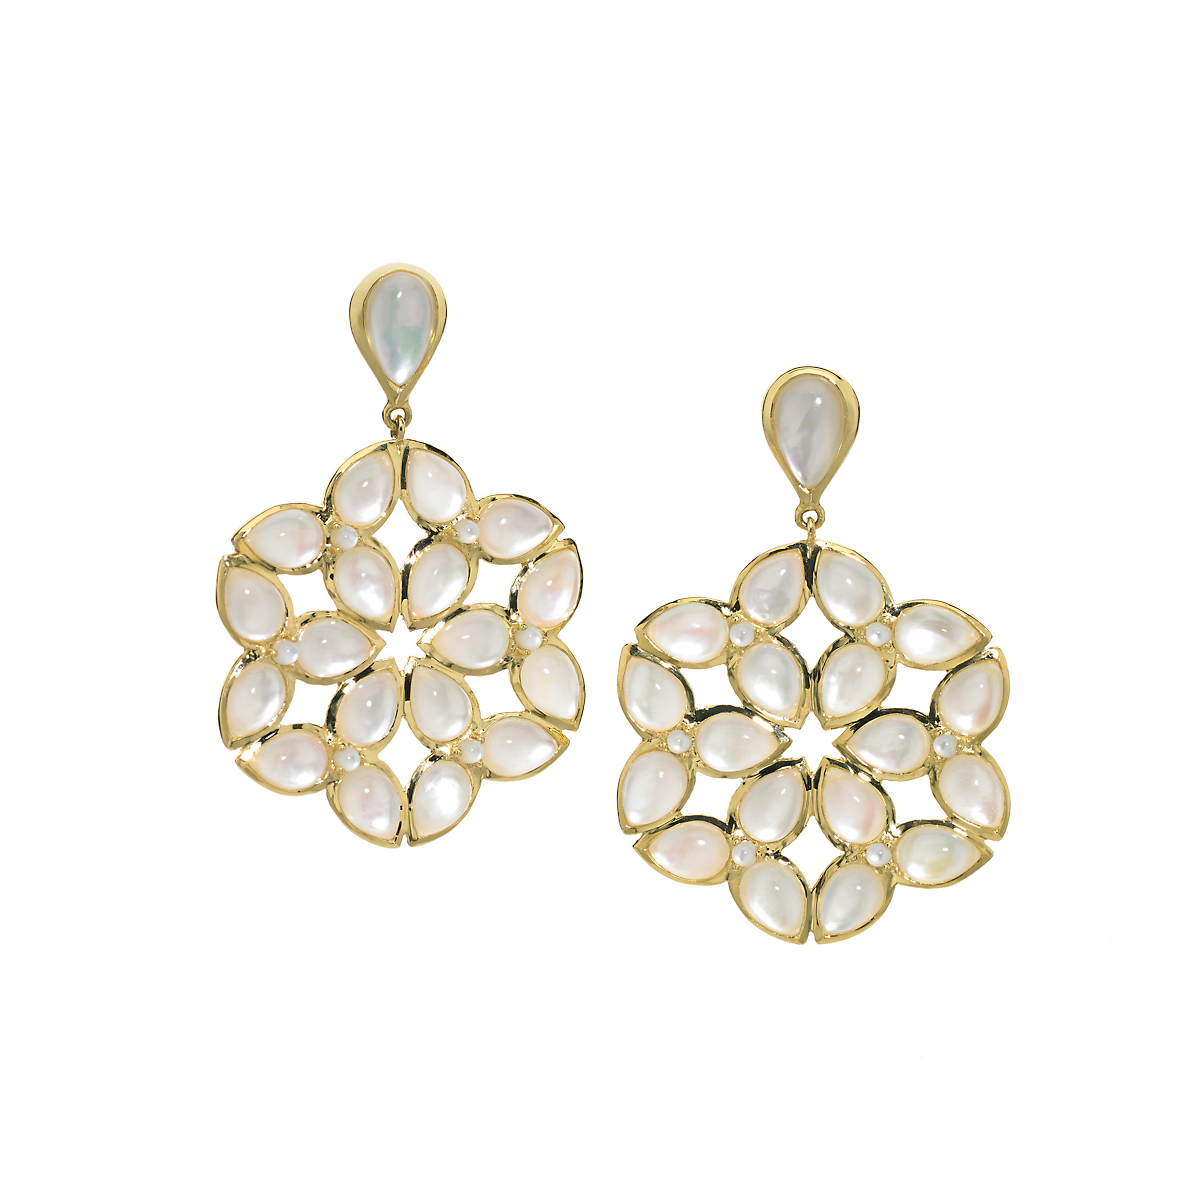 Elizabeth Showers Mother of Pearl & Quartz Kaleidoscope Earrings